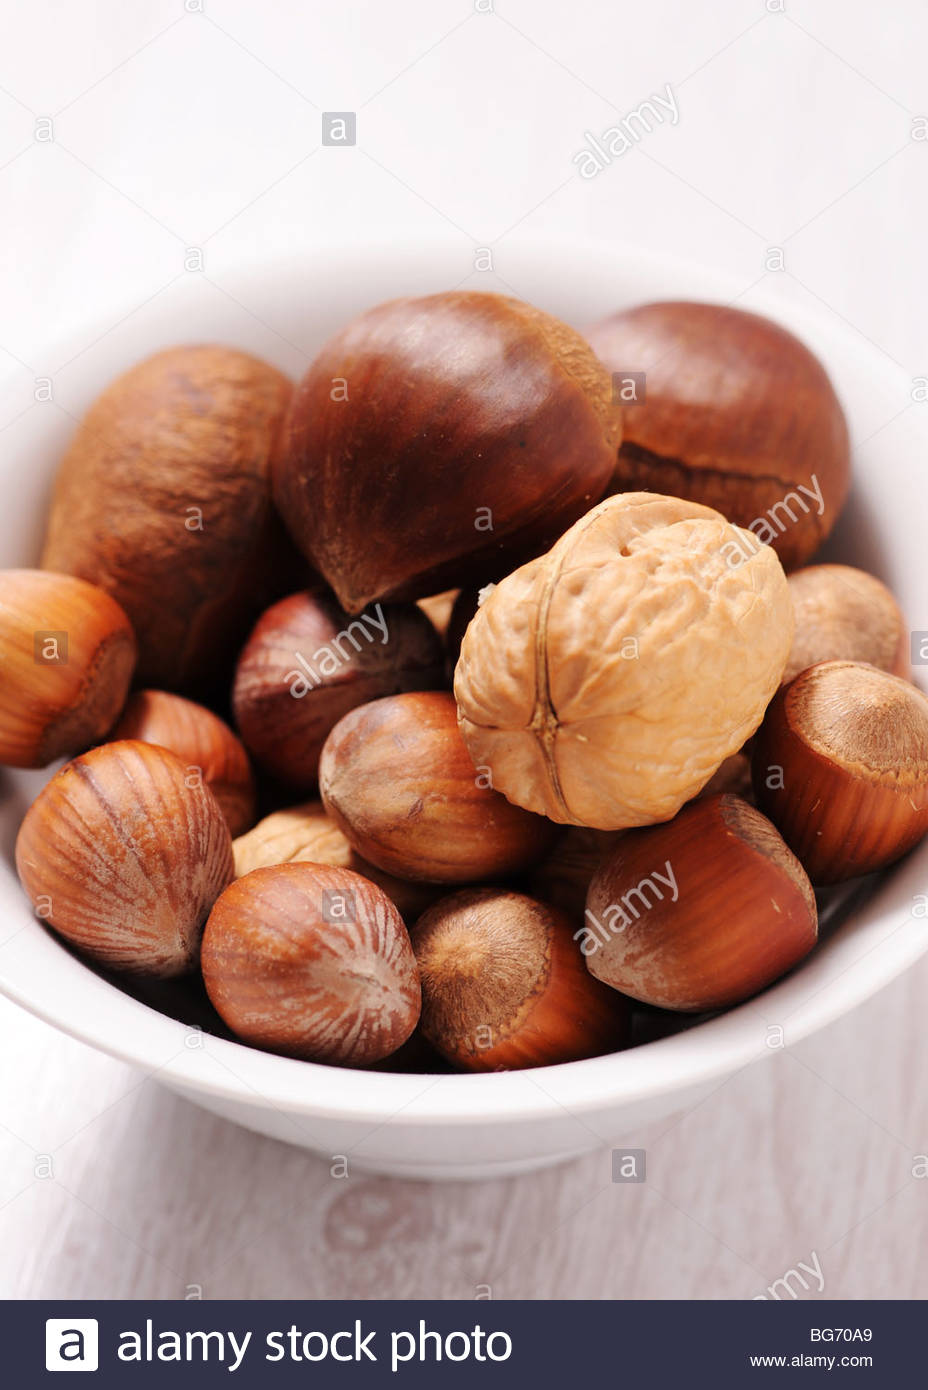 Bowl of mixed nuts on isolated background - Stock Image